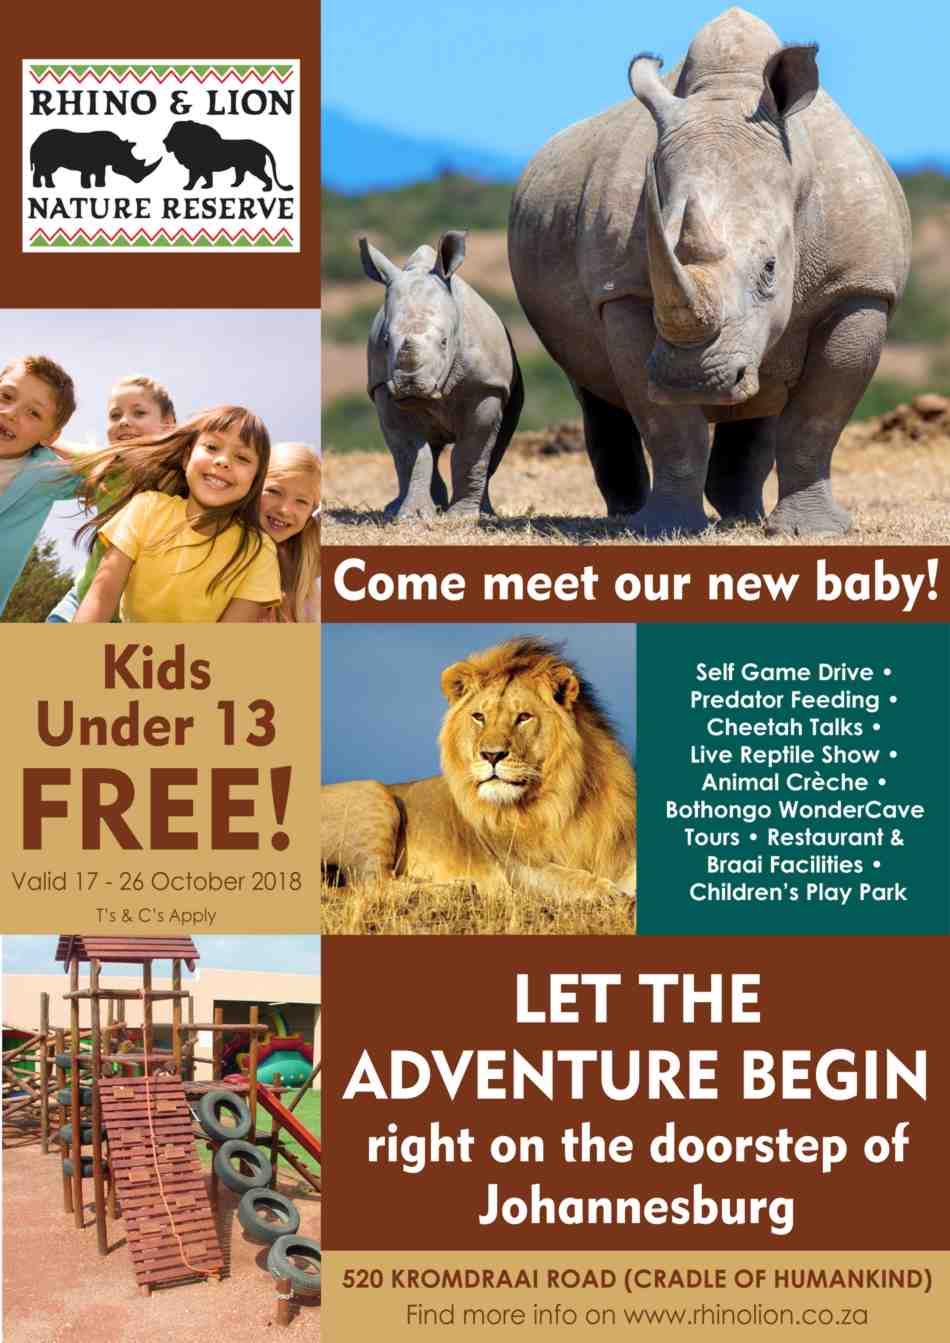 Come meet our new baby rhino. Kids under 13 are FREE. Valid from 17 – 26 October 2018